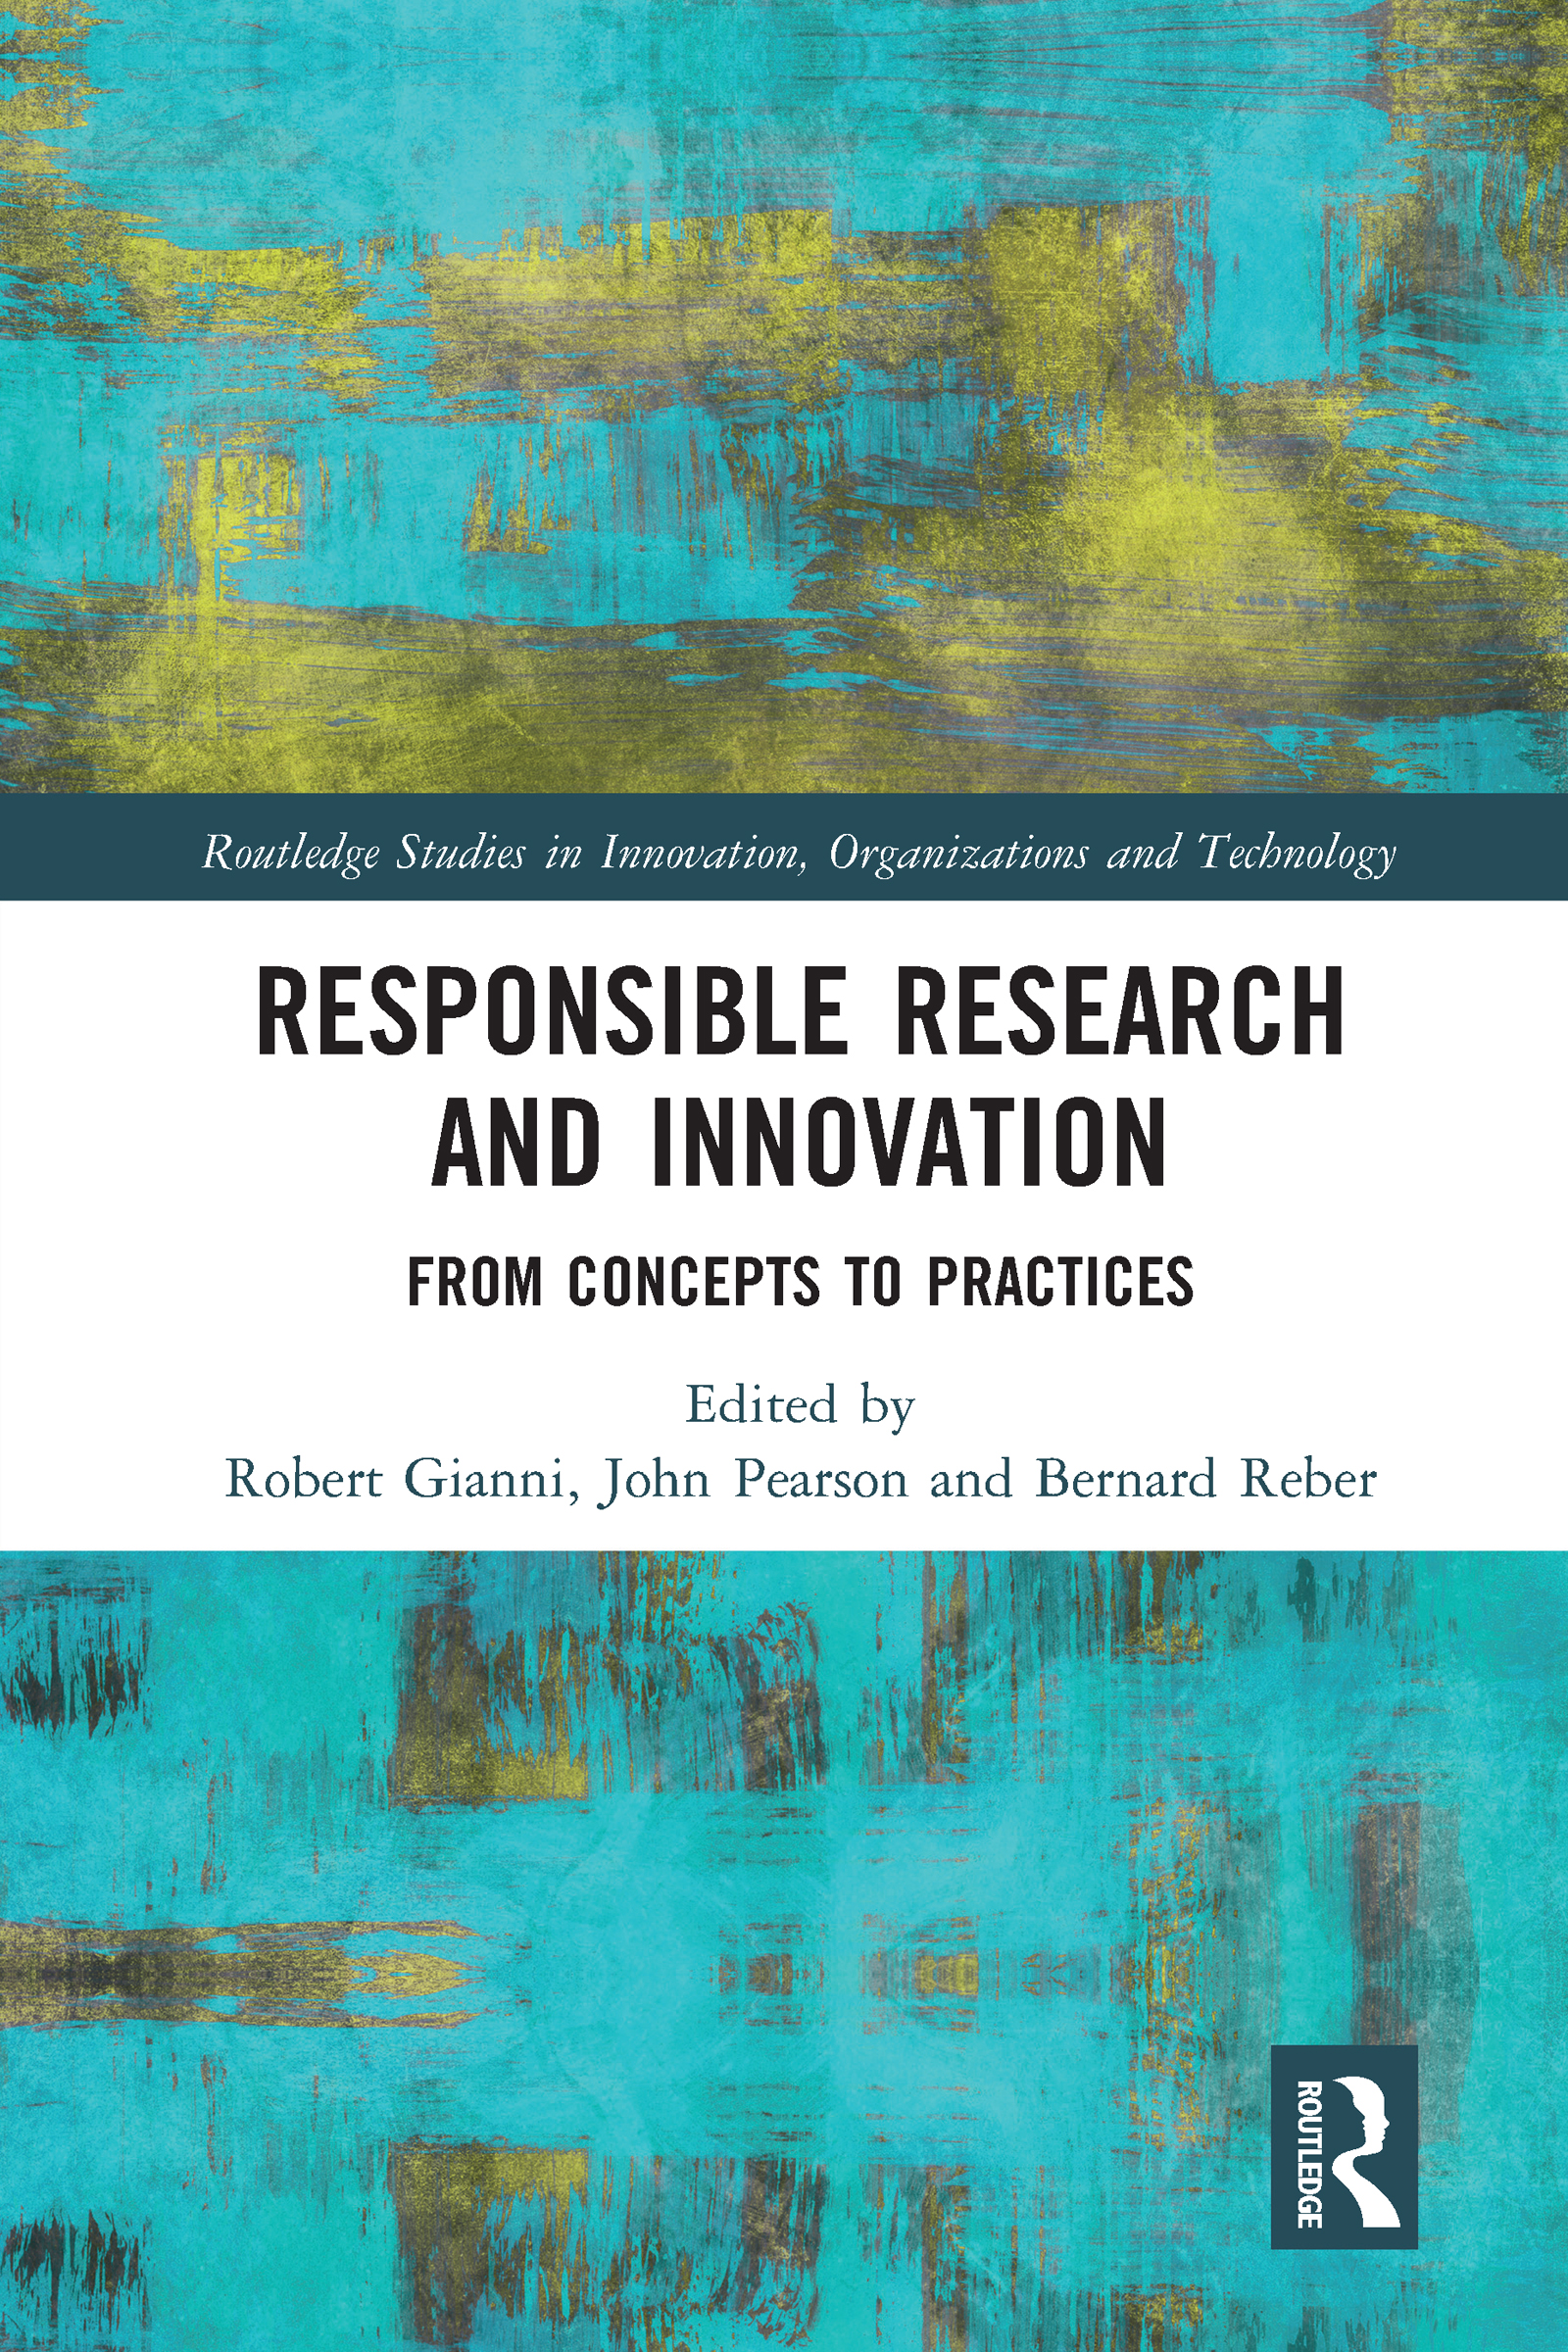 Responsible Research and Innovation